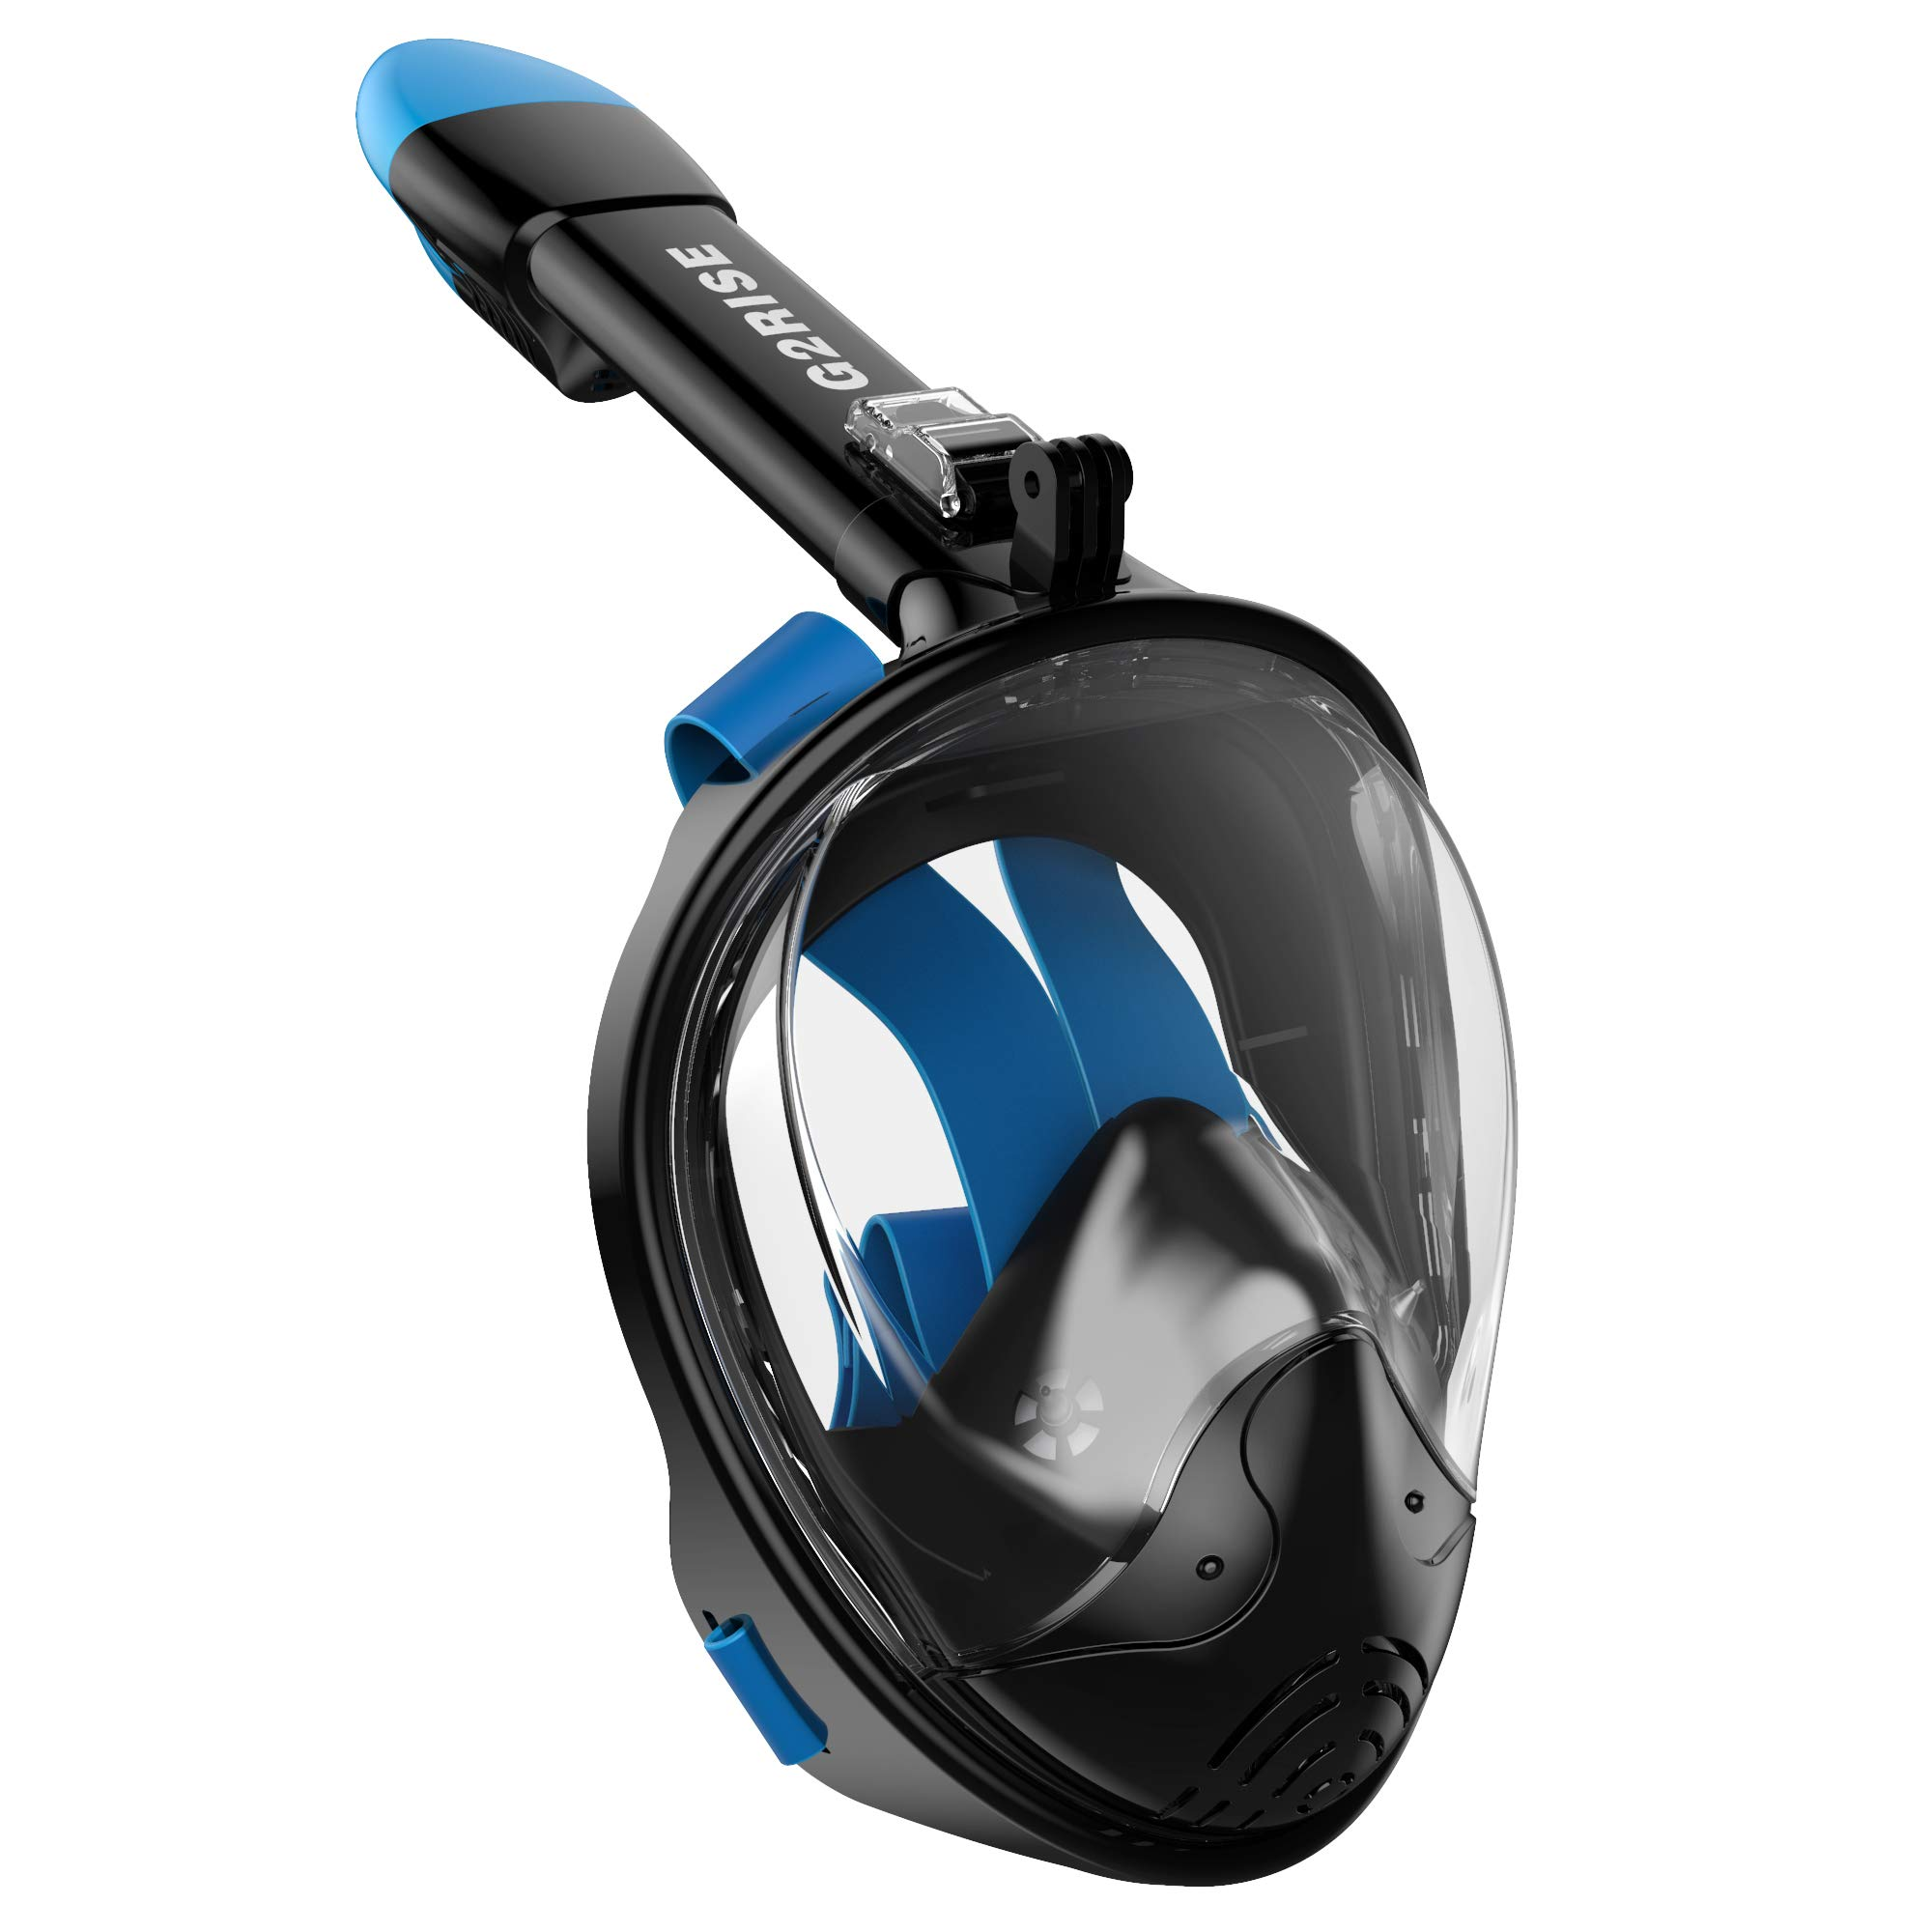 G2RISE SN01 Full Face Snorkel Mask with Detachable Snorkeling Mount, Anti-Fog and Foldable Design for Adults Kids (Black Blue, L/XL) by G2RISE